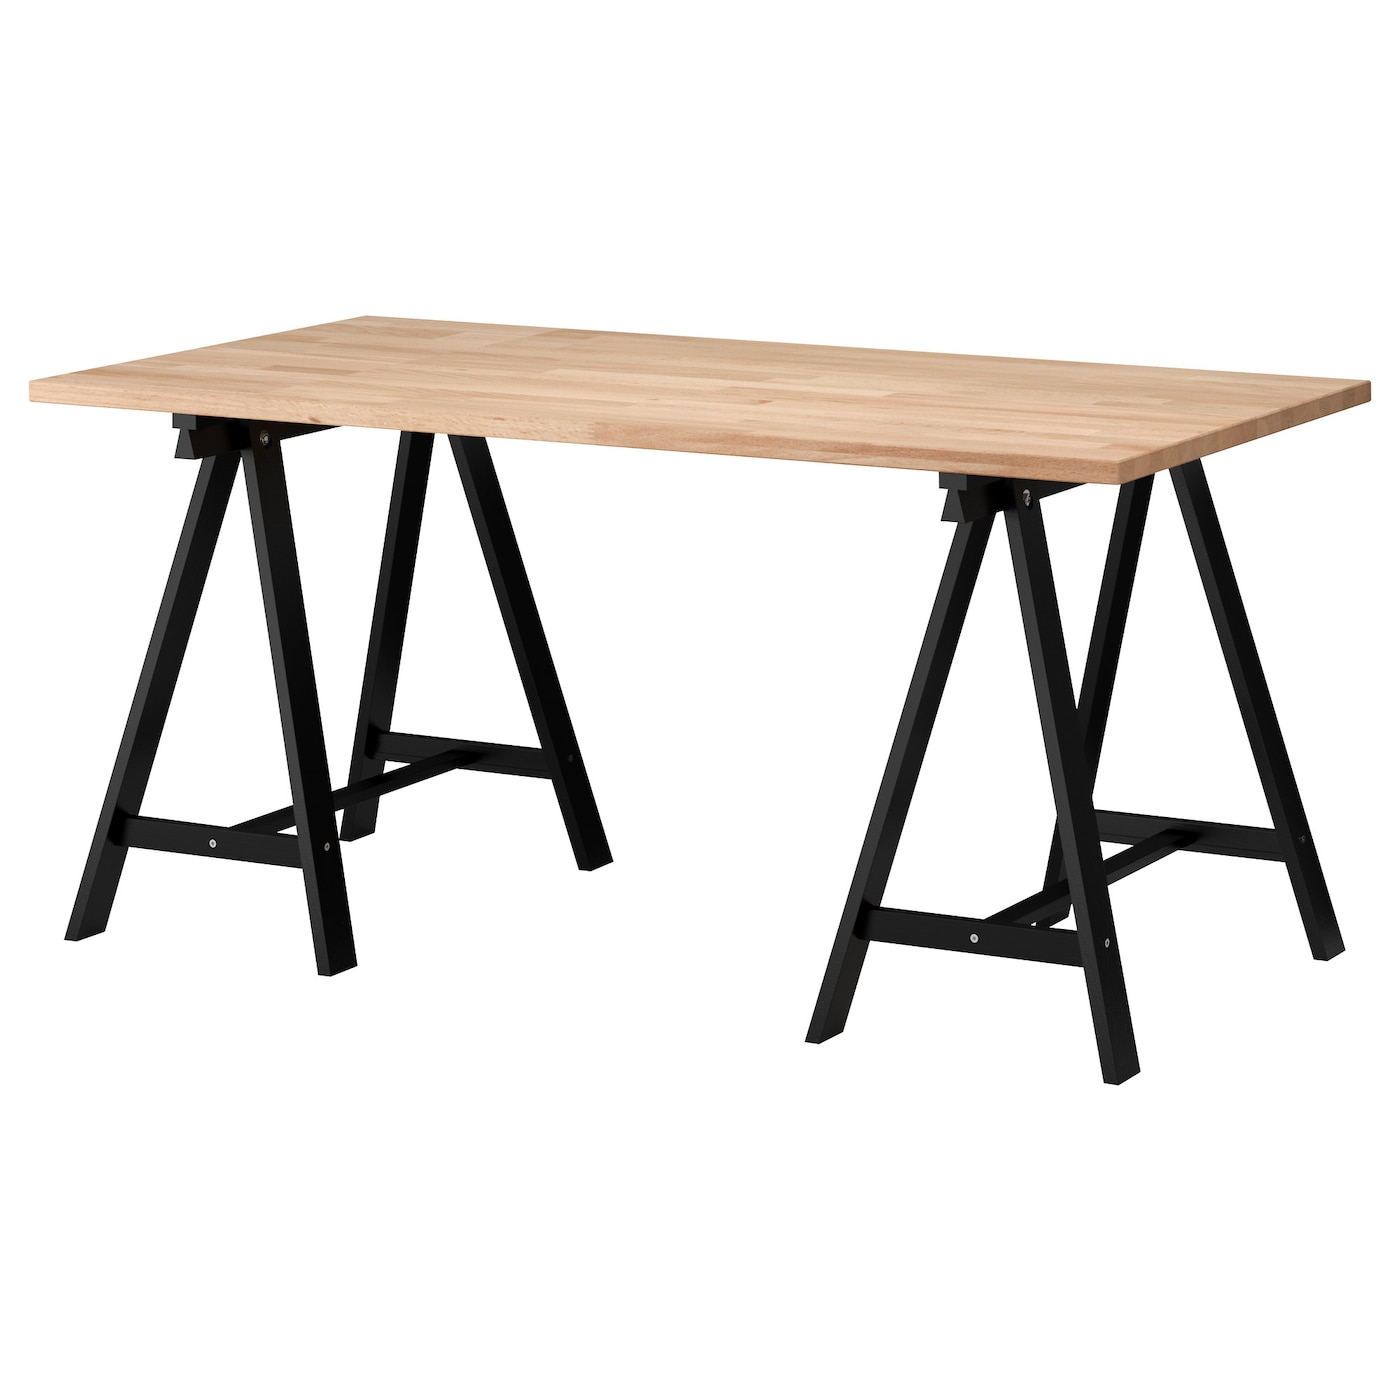 IKEA GERTON/ODDVALD table Solid wood is a durable natural material.